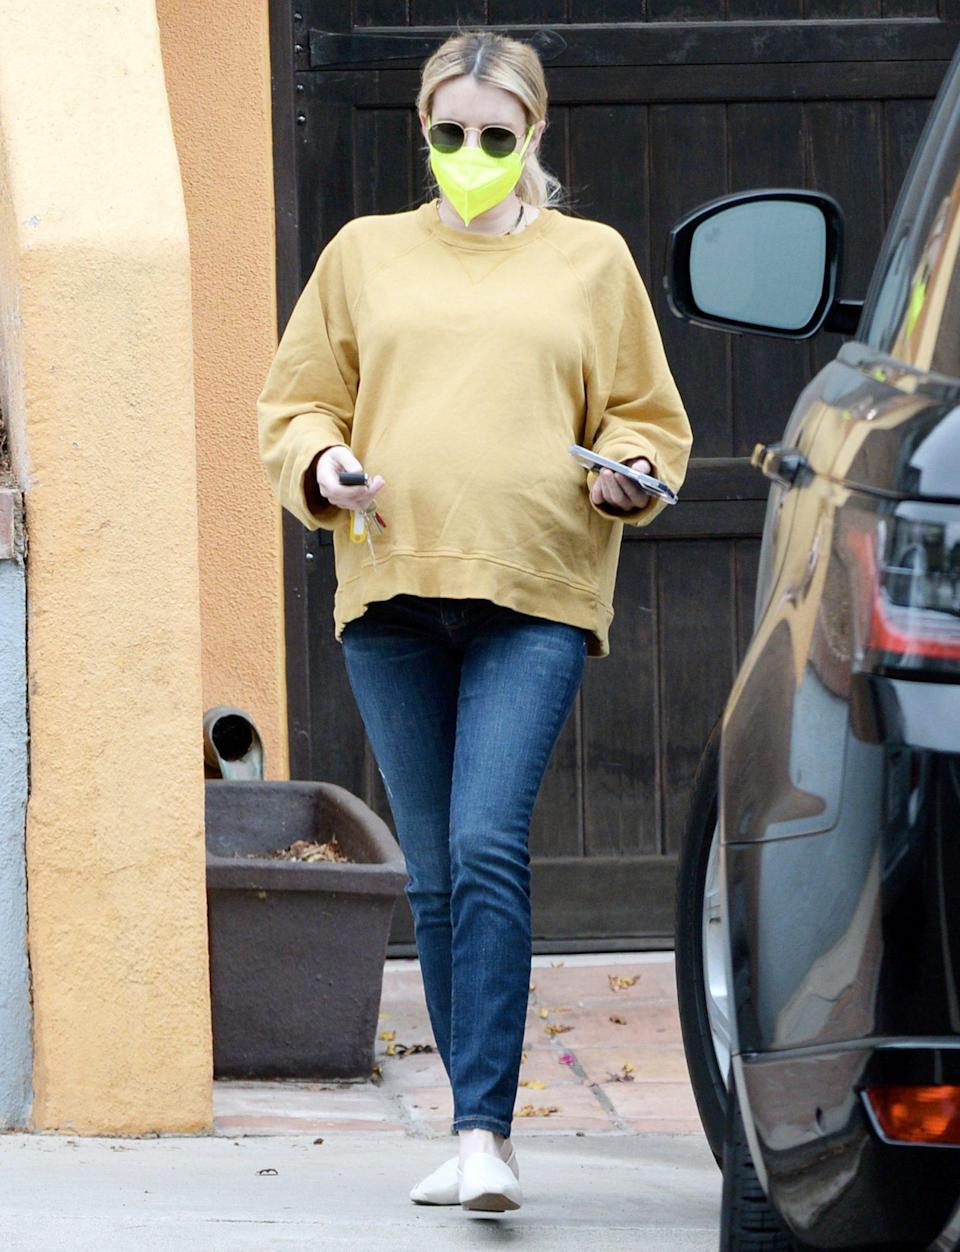 <p>Emma Roberts wore a yellow sweater, jeans and a neon yellow mask as she went about her day on Monday in L.A.</p>